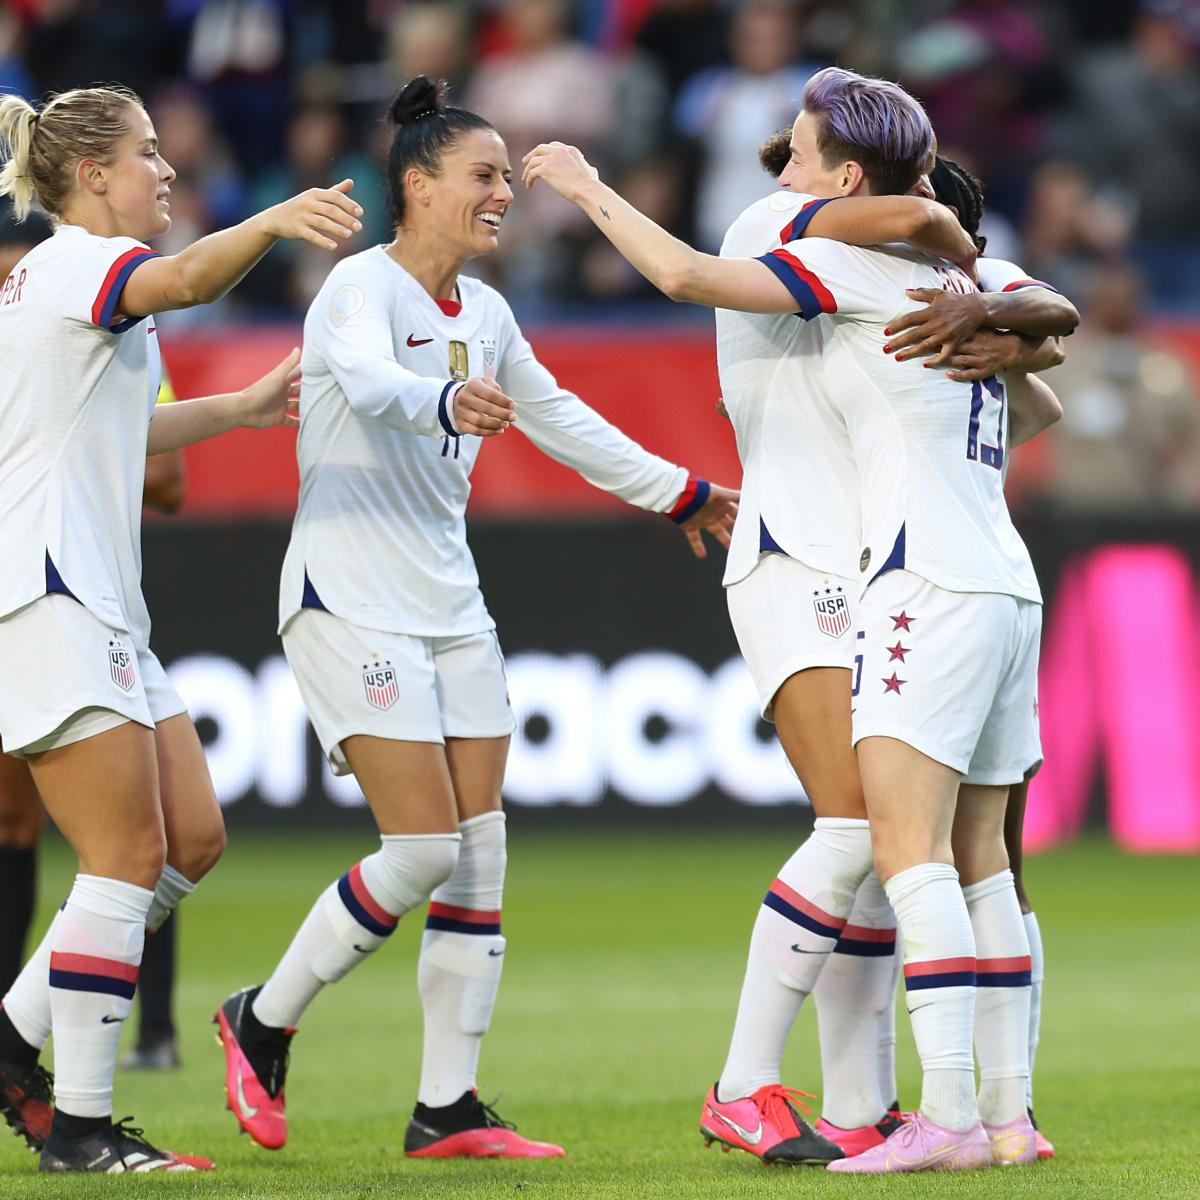 USSF Accused of 'False Narrative' as USA Women's Soccer Players Pursue Equal Pay